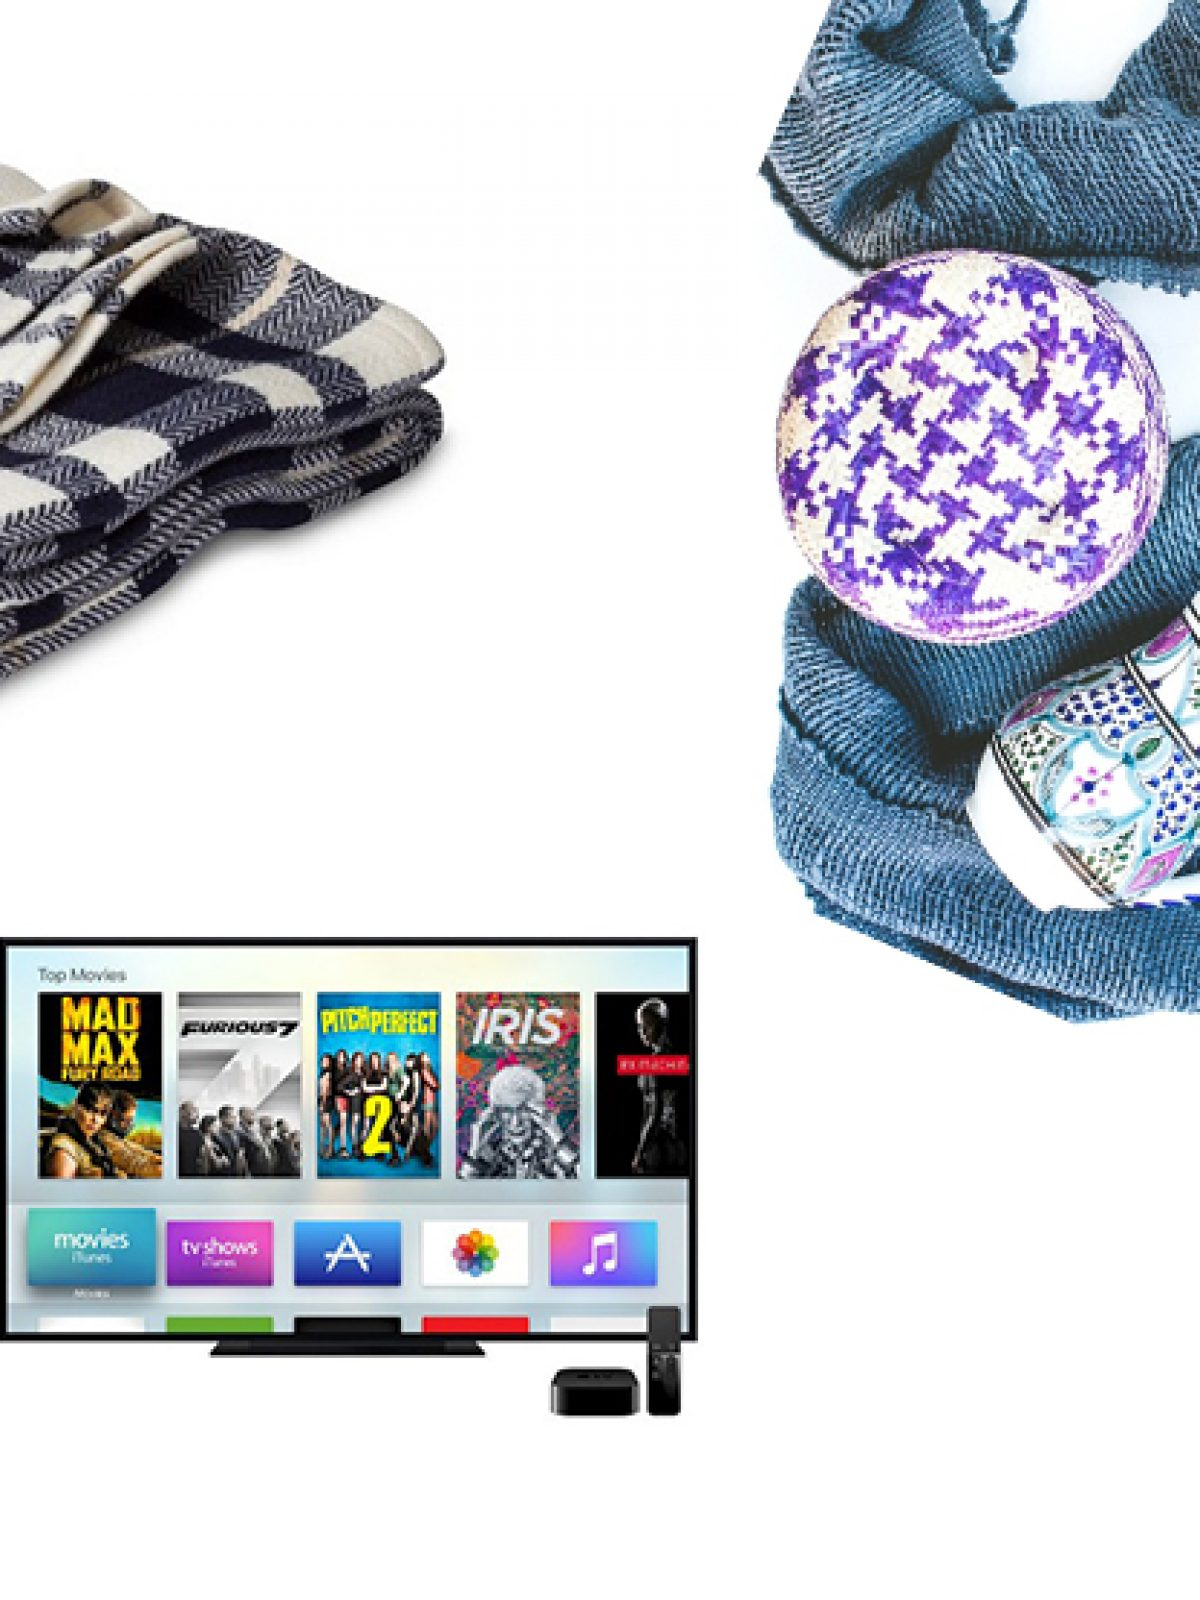 netflix and chill, gift guide, holiday gift ideas, homebody, apple tv, cute and comfy pajamas, wine accessories, cozy blanket, plaid blanket, faux fur blanket, cozy box